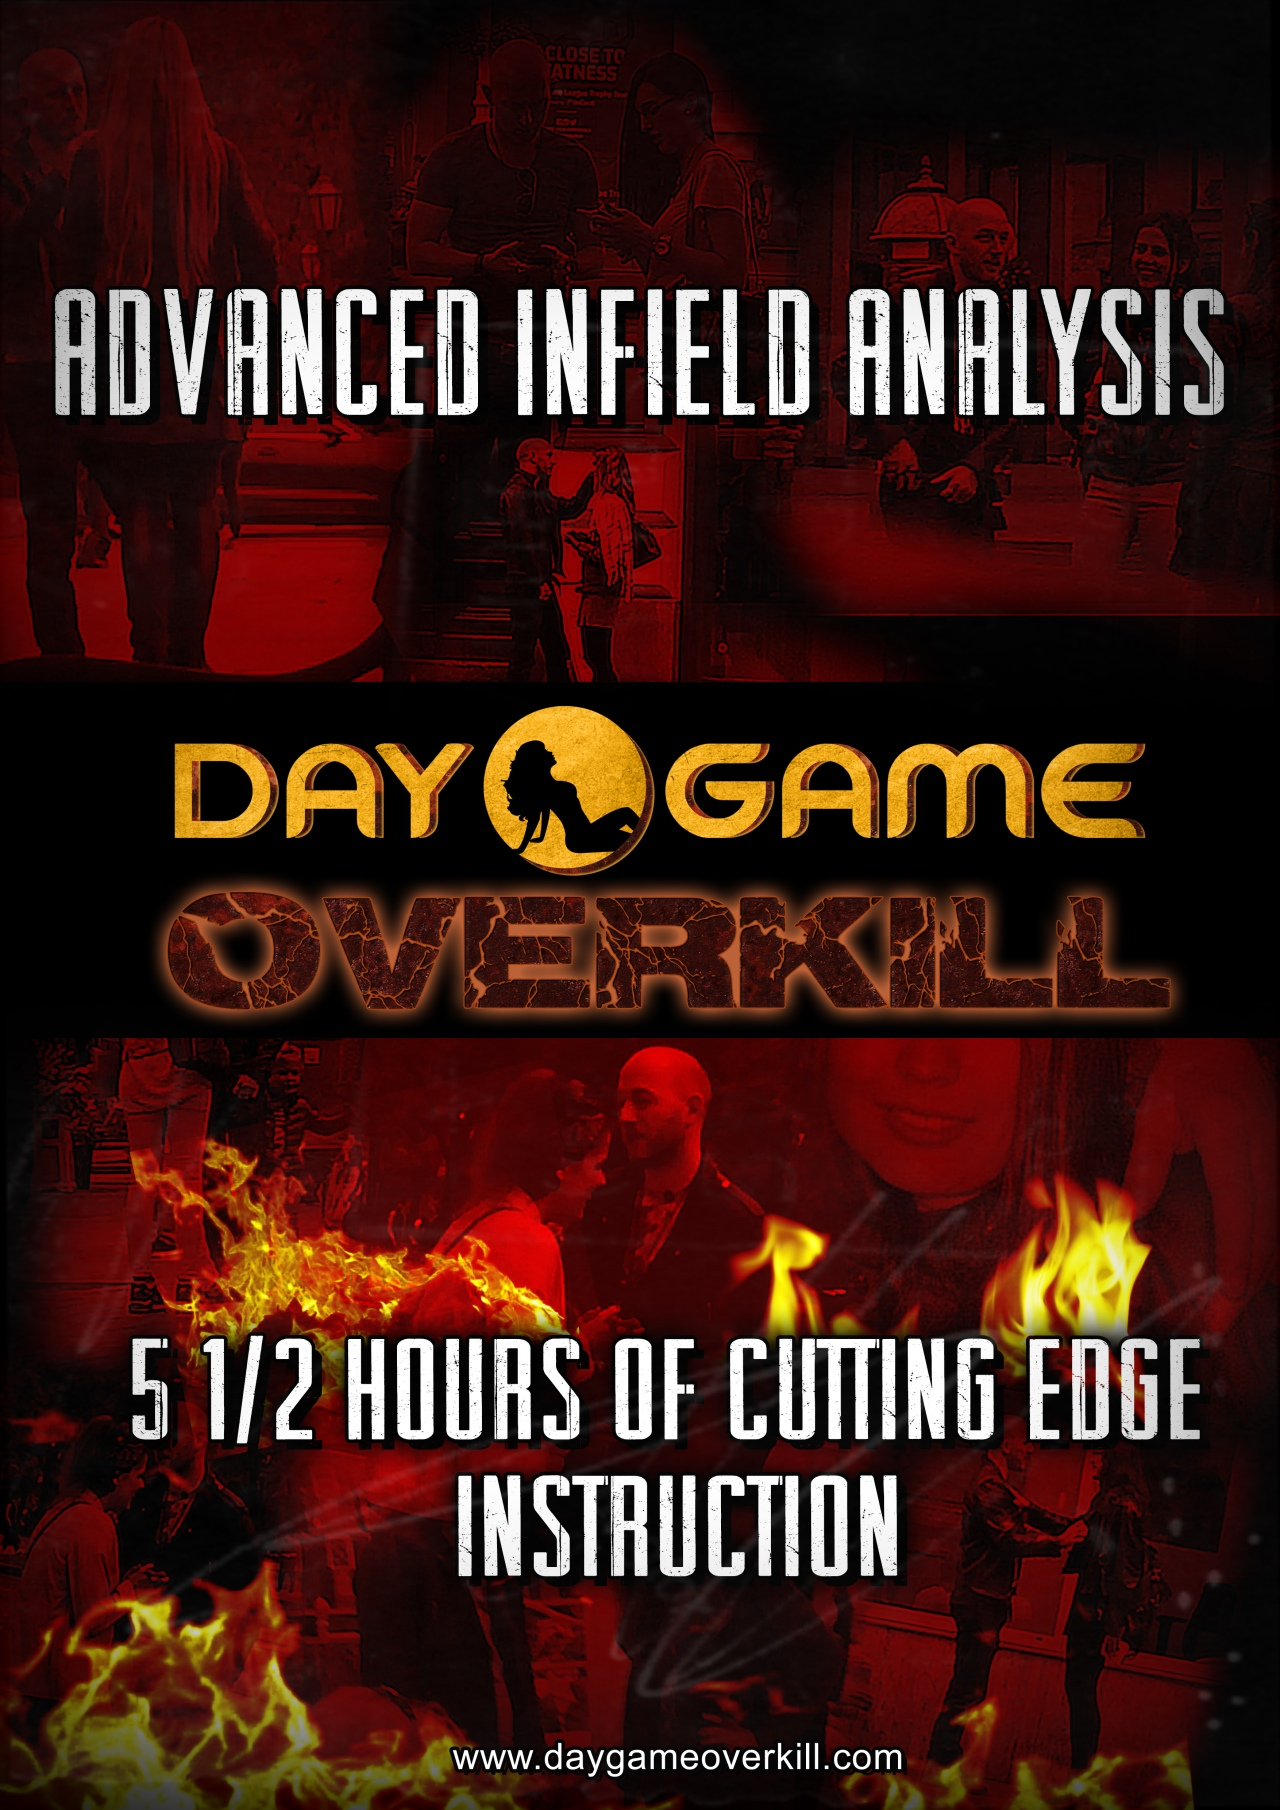 Daygame Overkill poster hi res